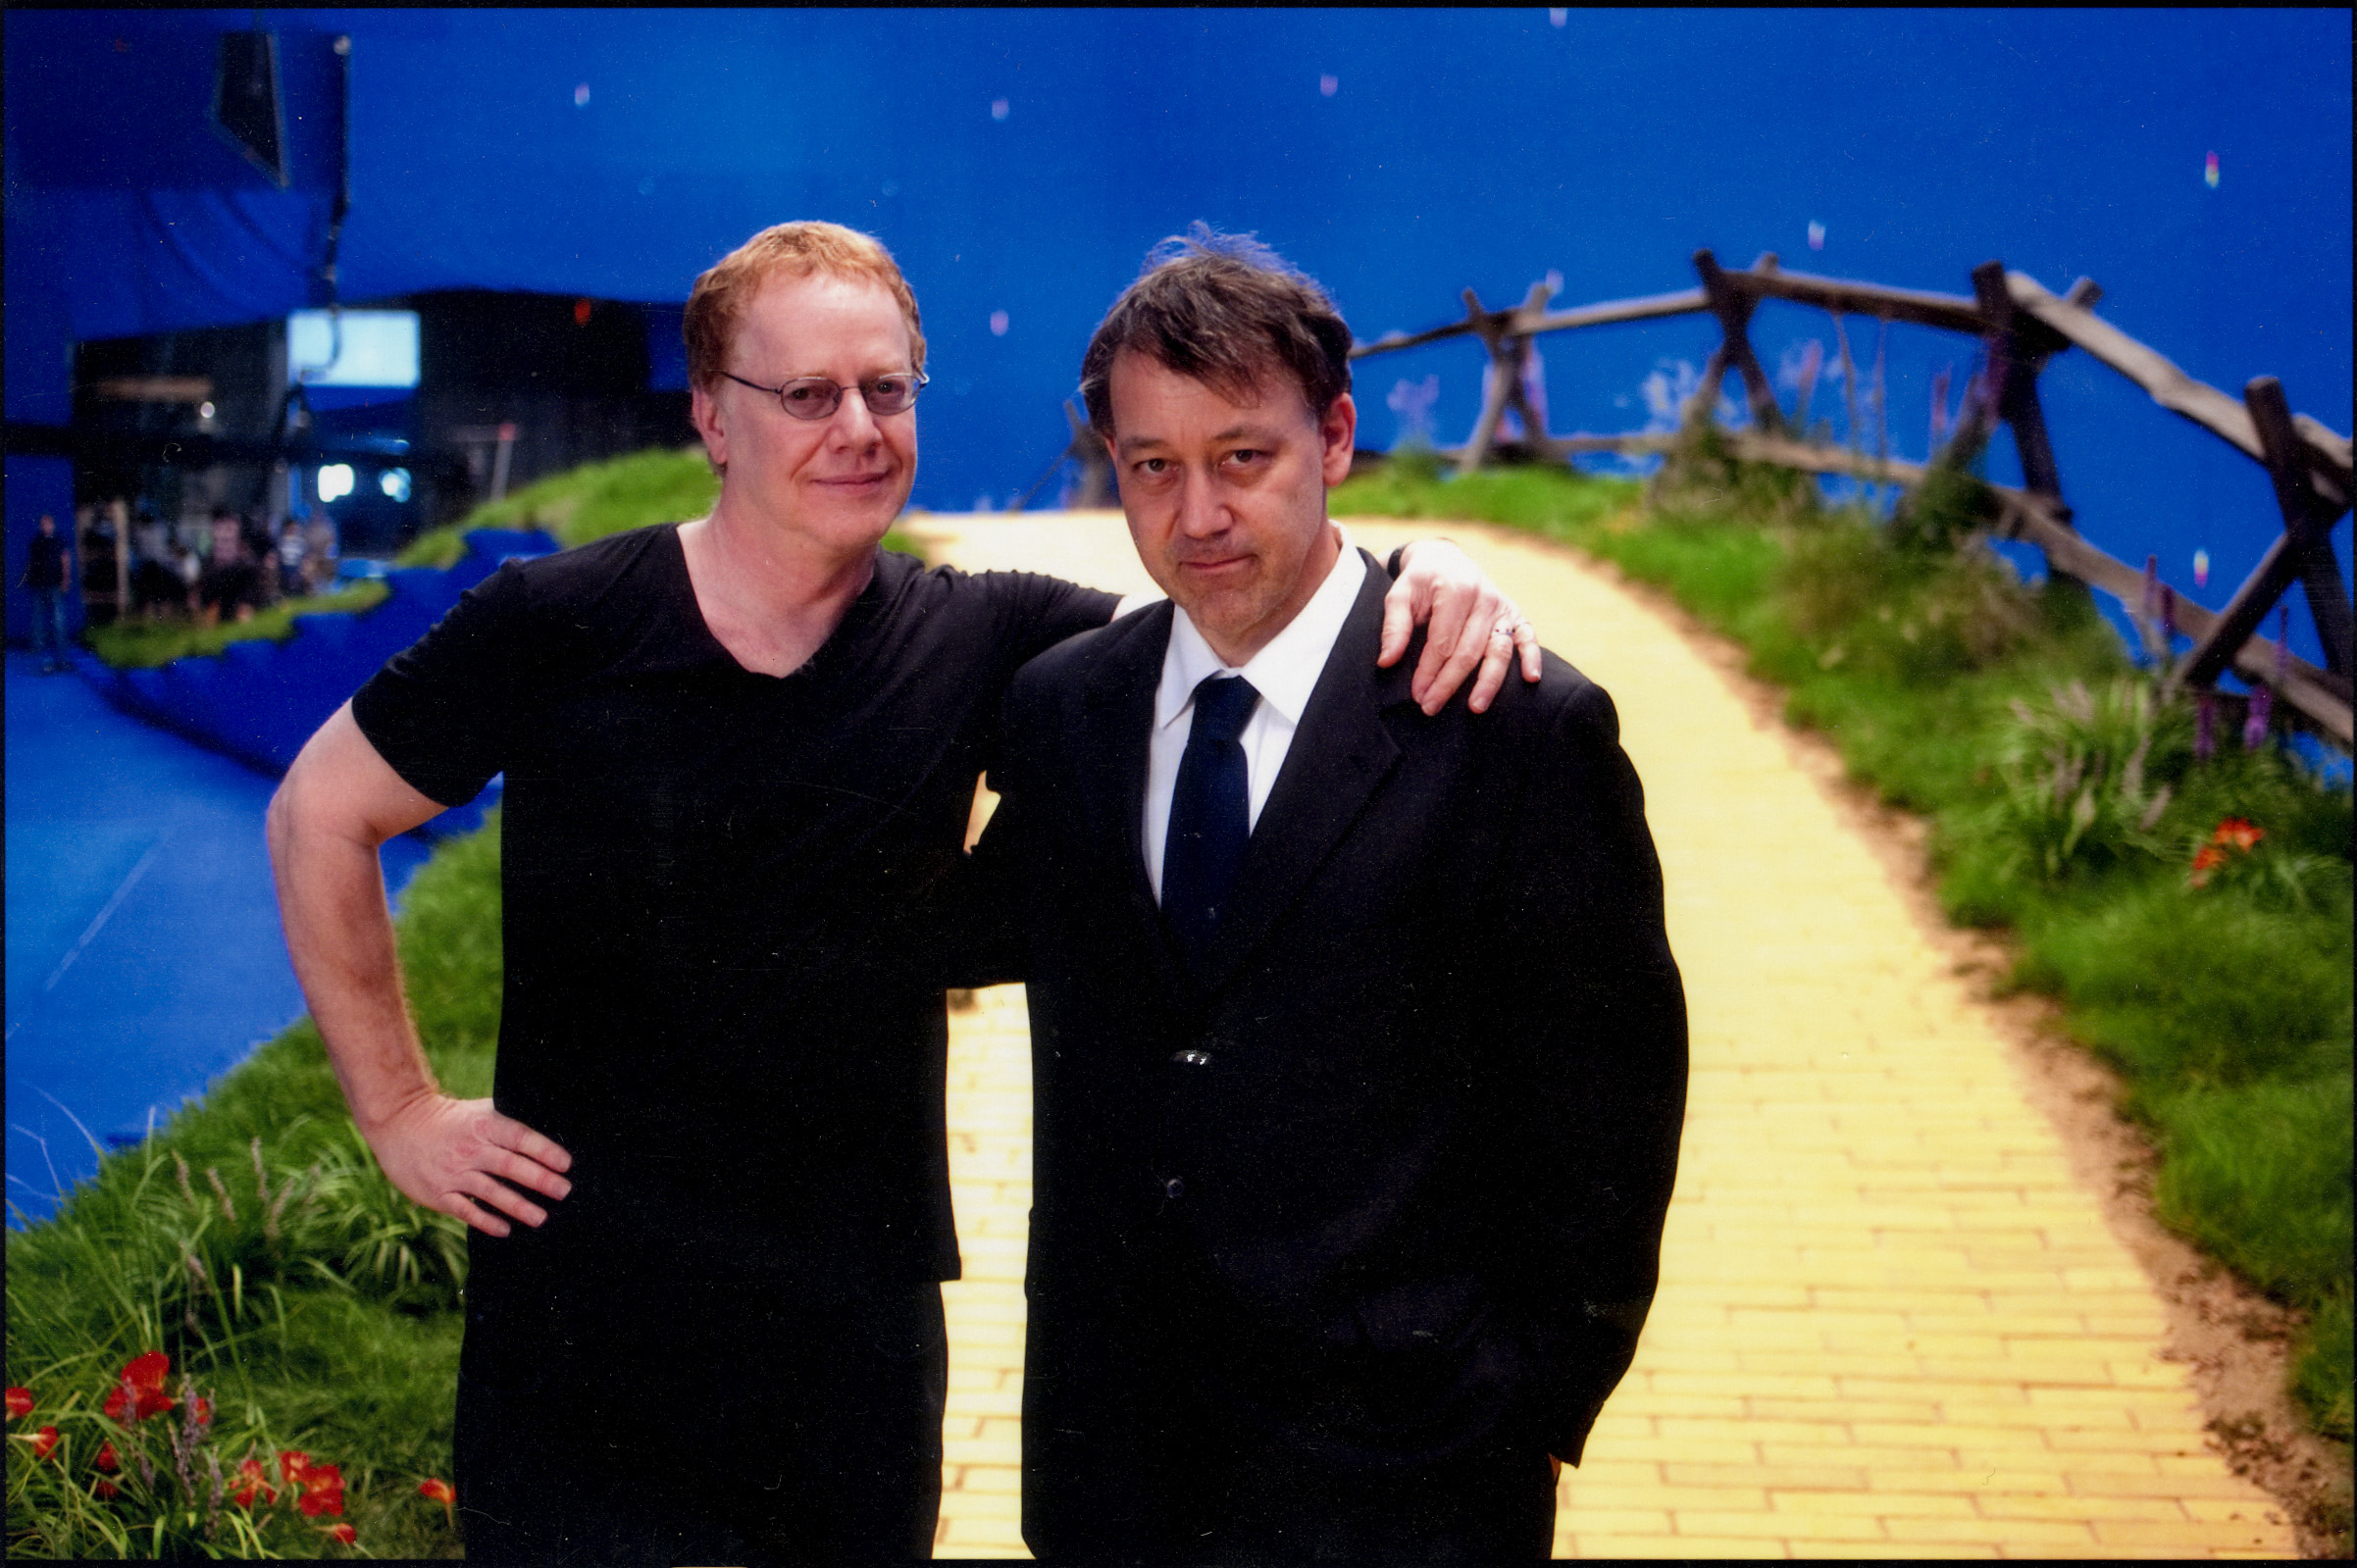 Sam Raimi and Danny Elfman on the set of Oz The Great and Powerful